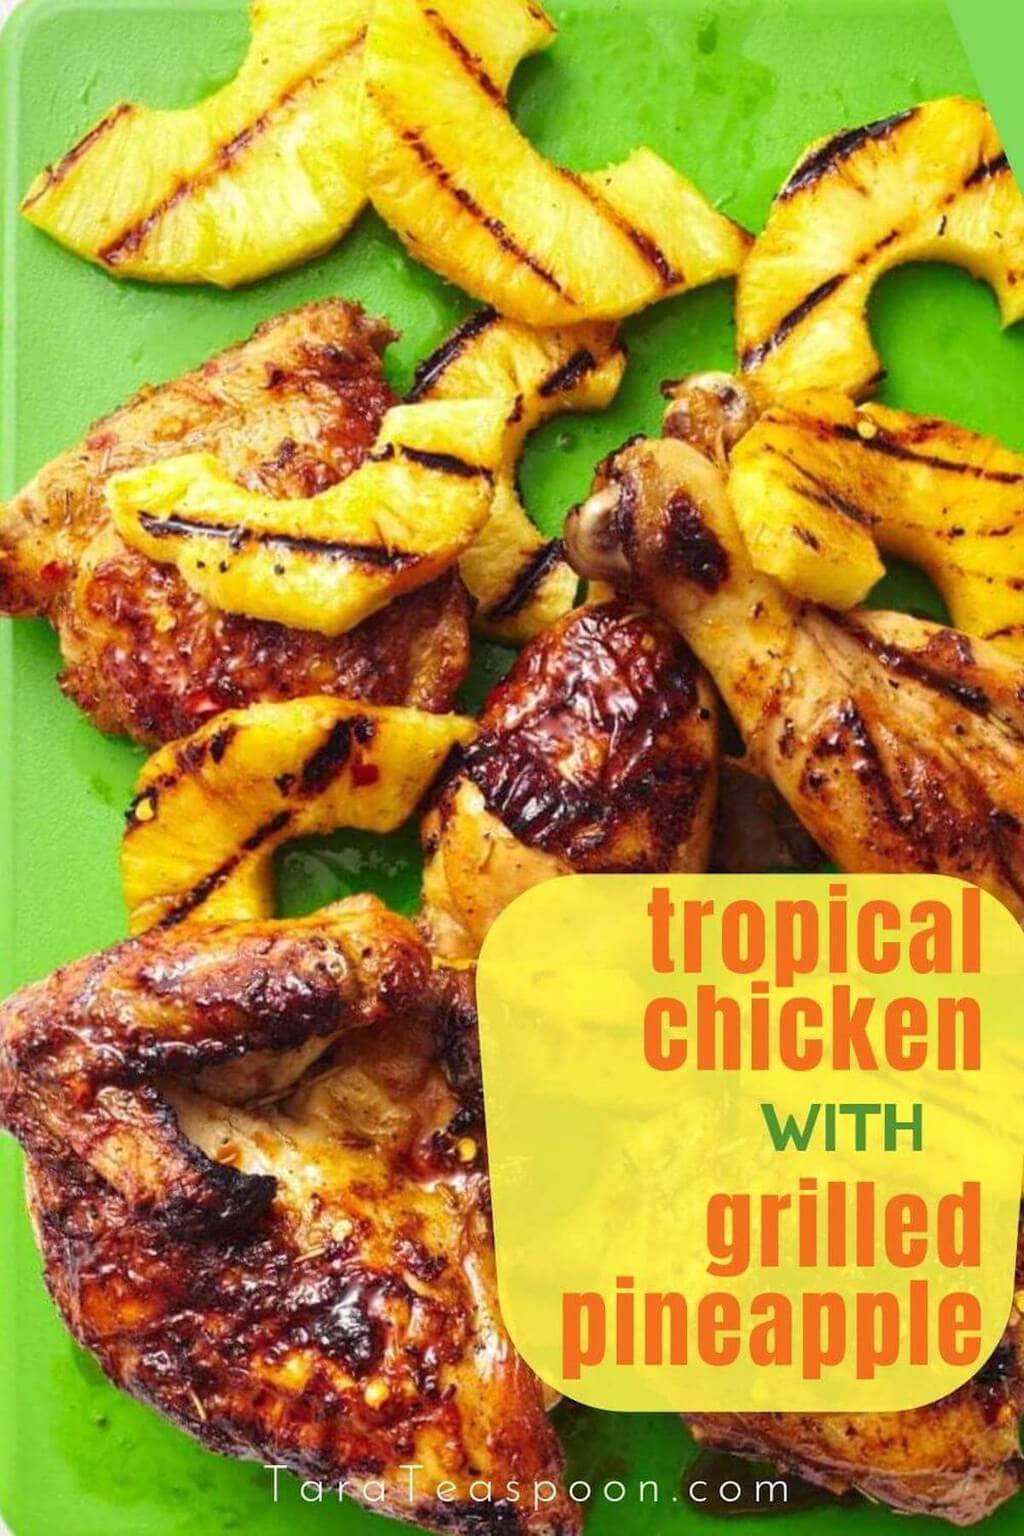 tropical chicken with grilled pineapple on green background